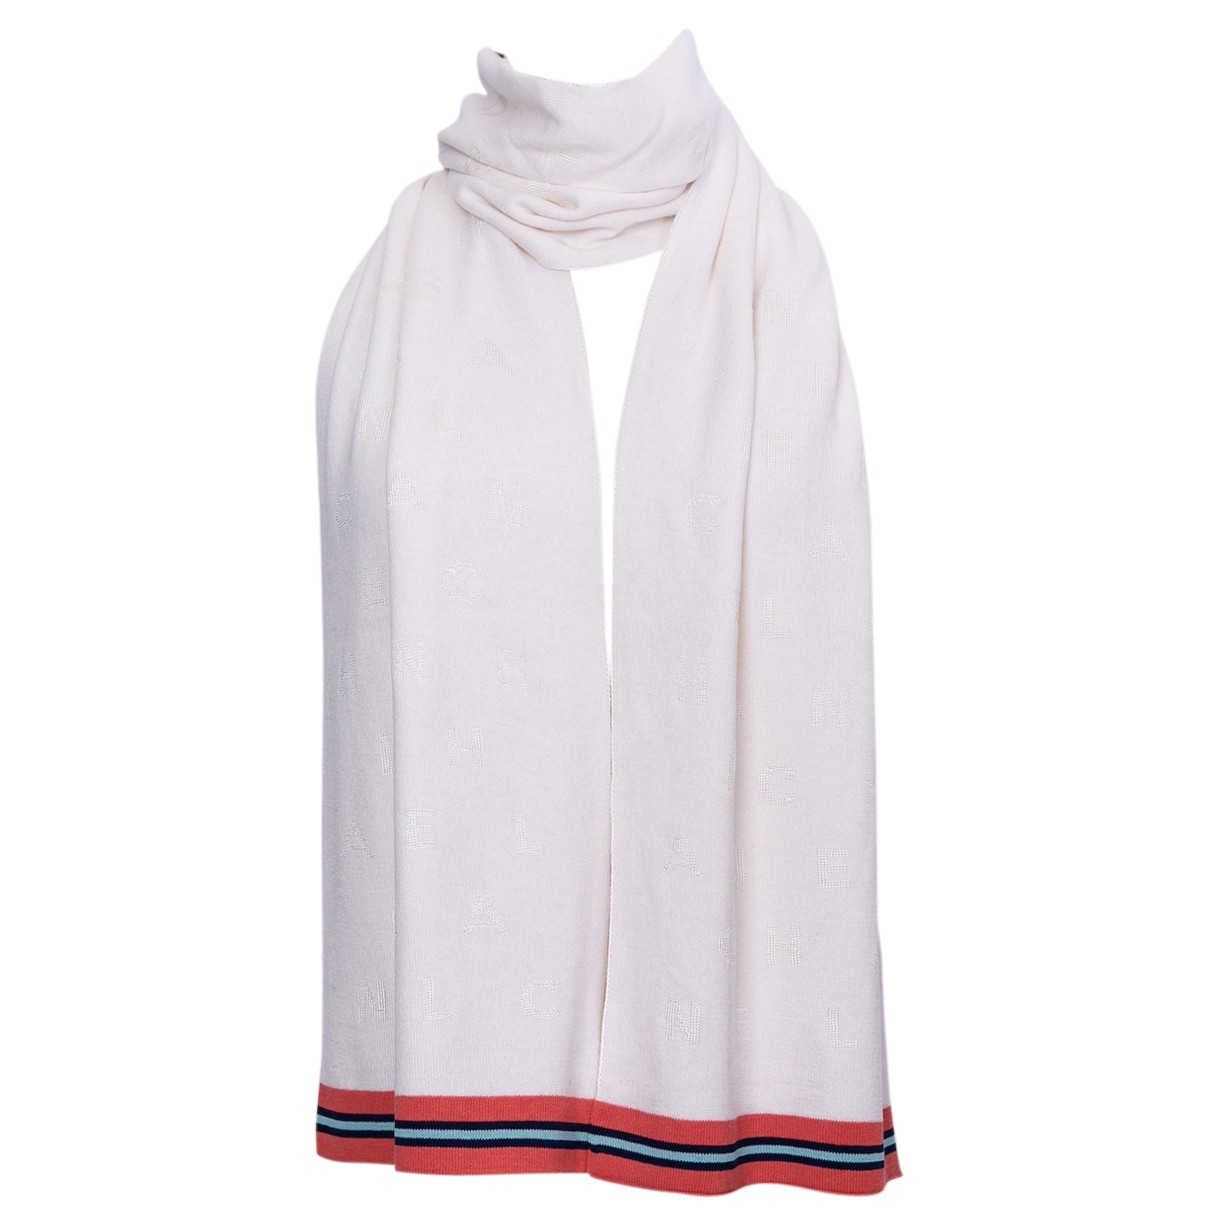 Chanel N White Cashmere scarf for Women N